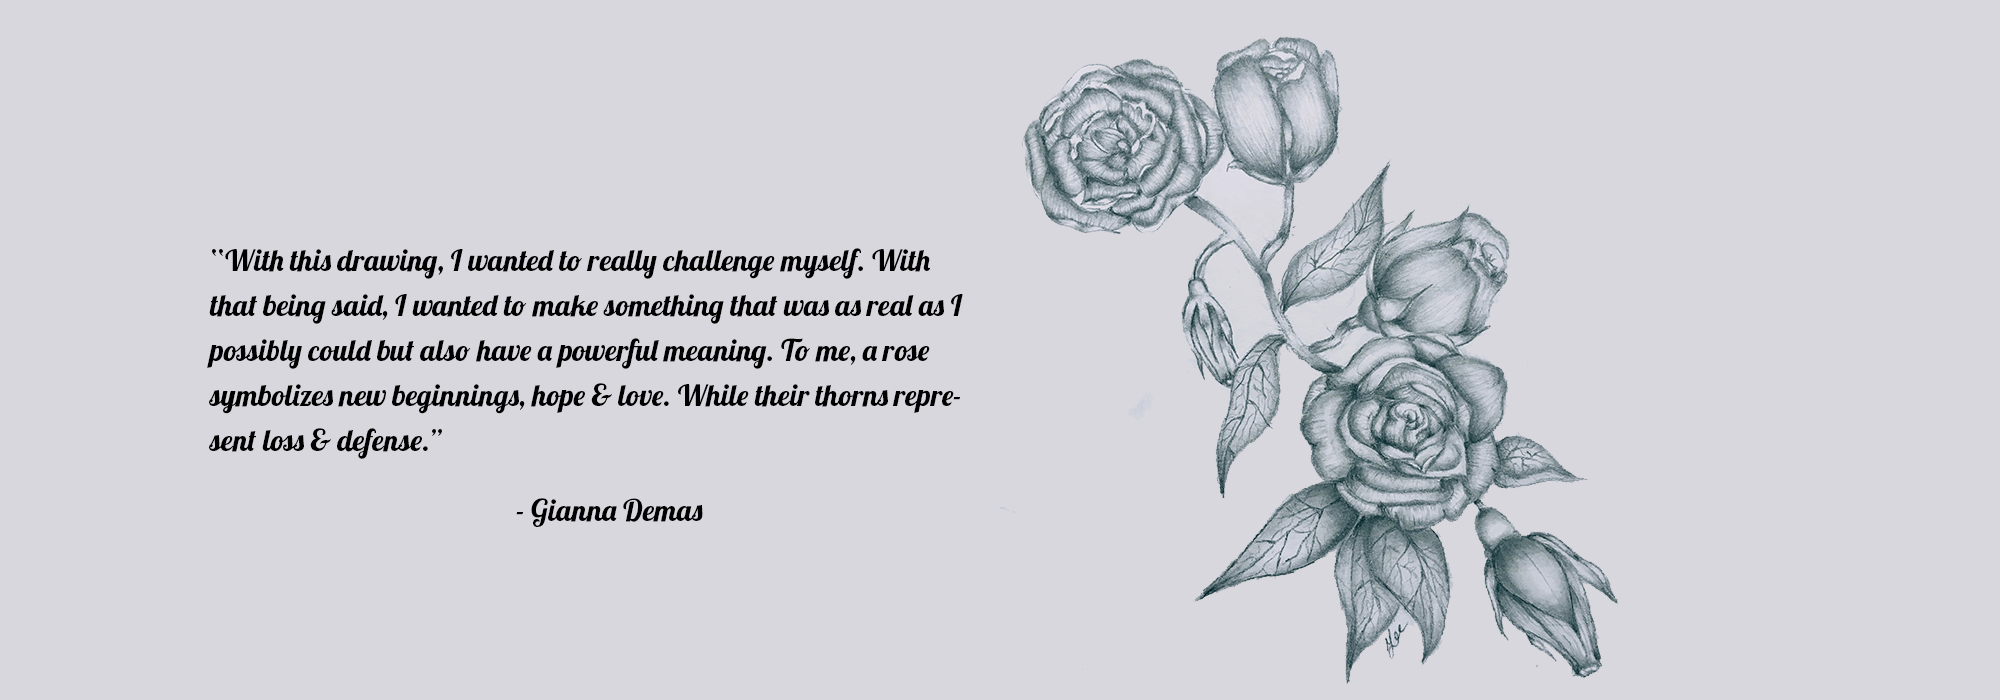 A quote by Gianna Demas